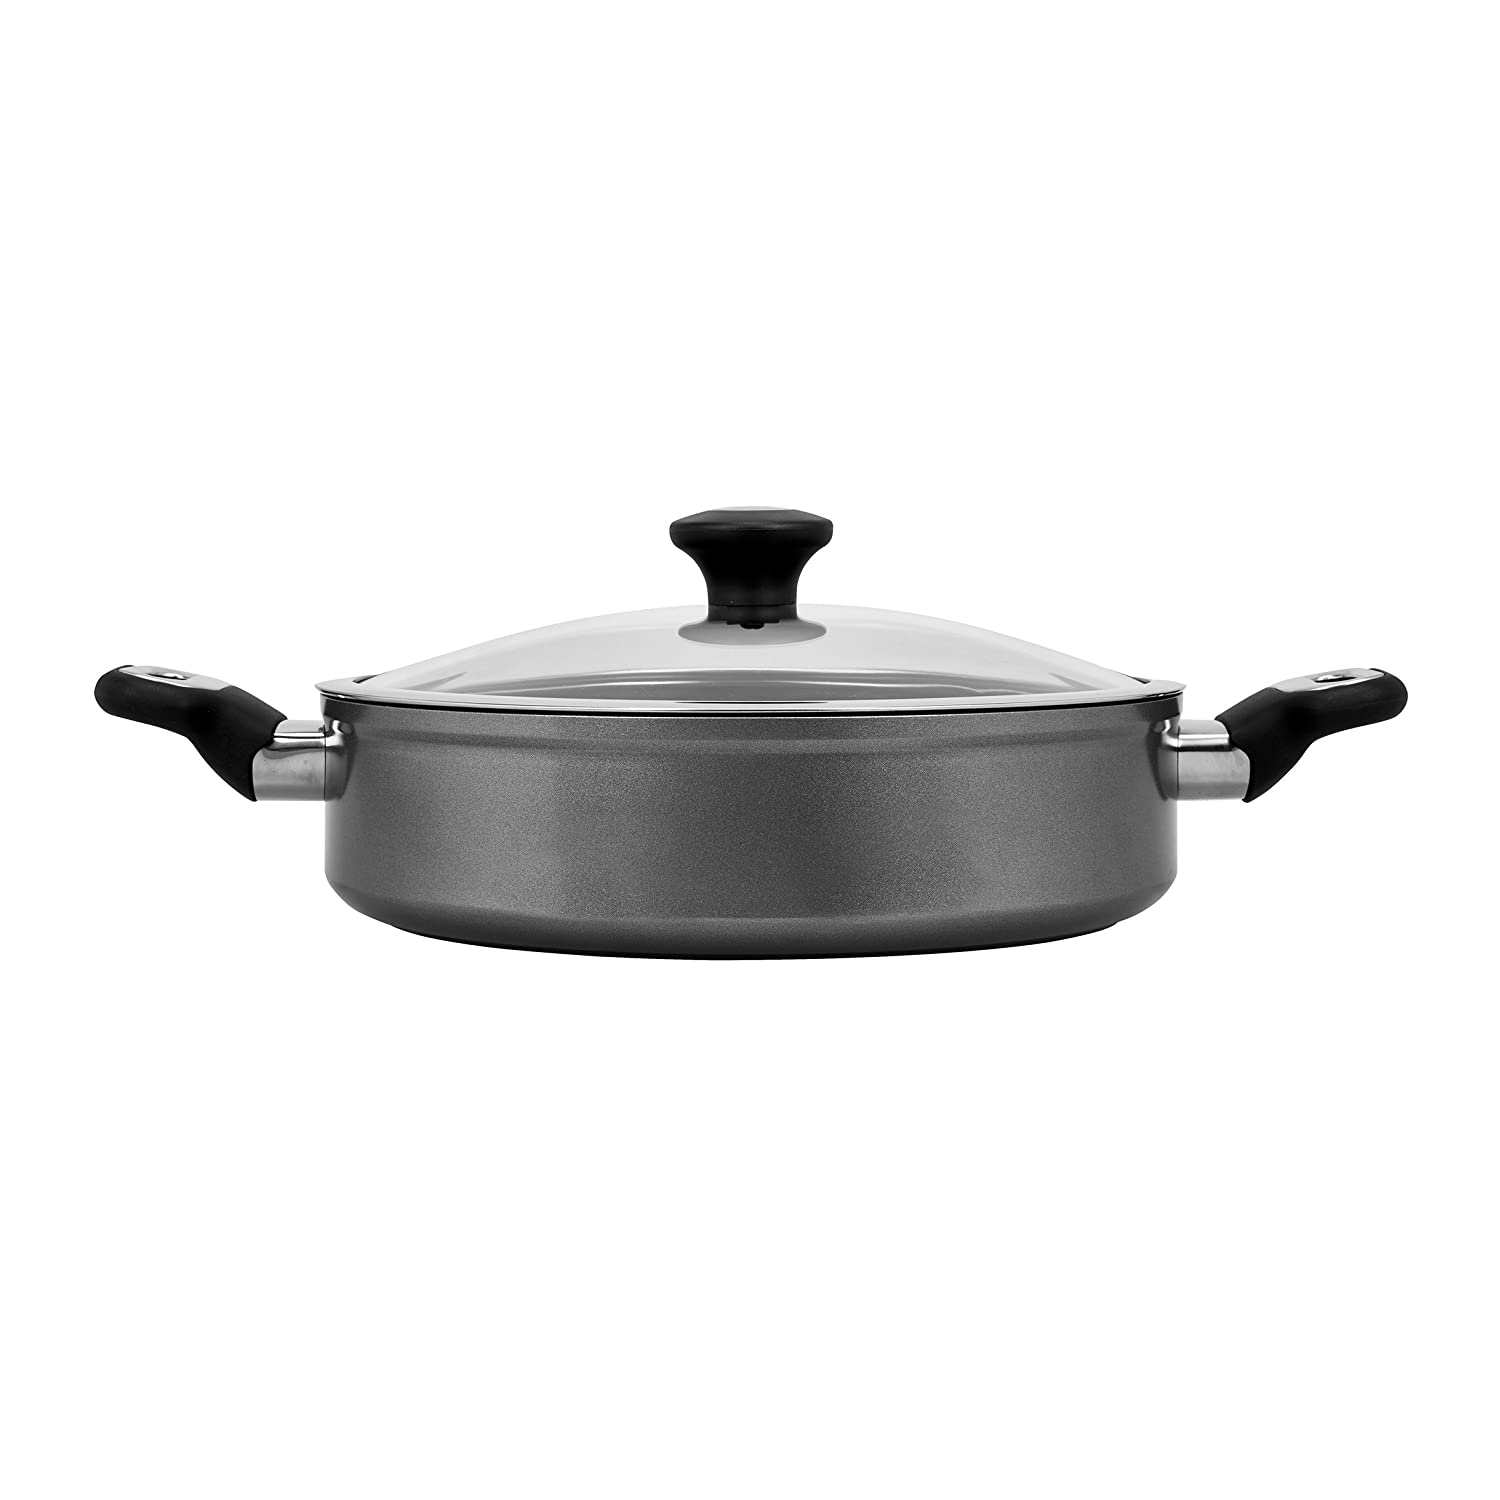 Thomas Titanium Cookware - Induction Compatible - Sauté Pan with ...